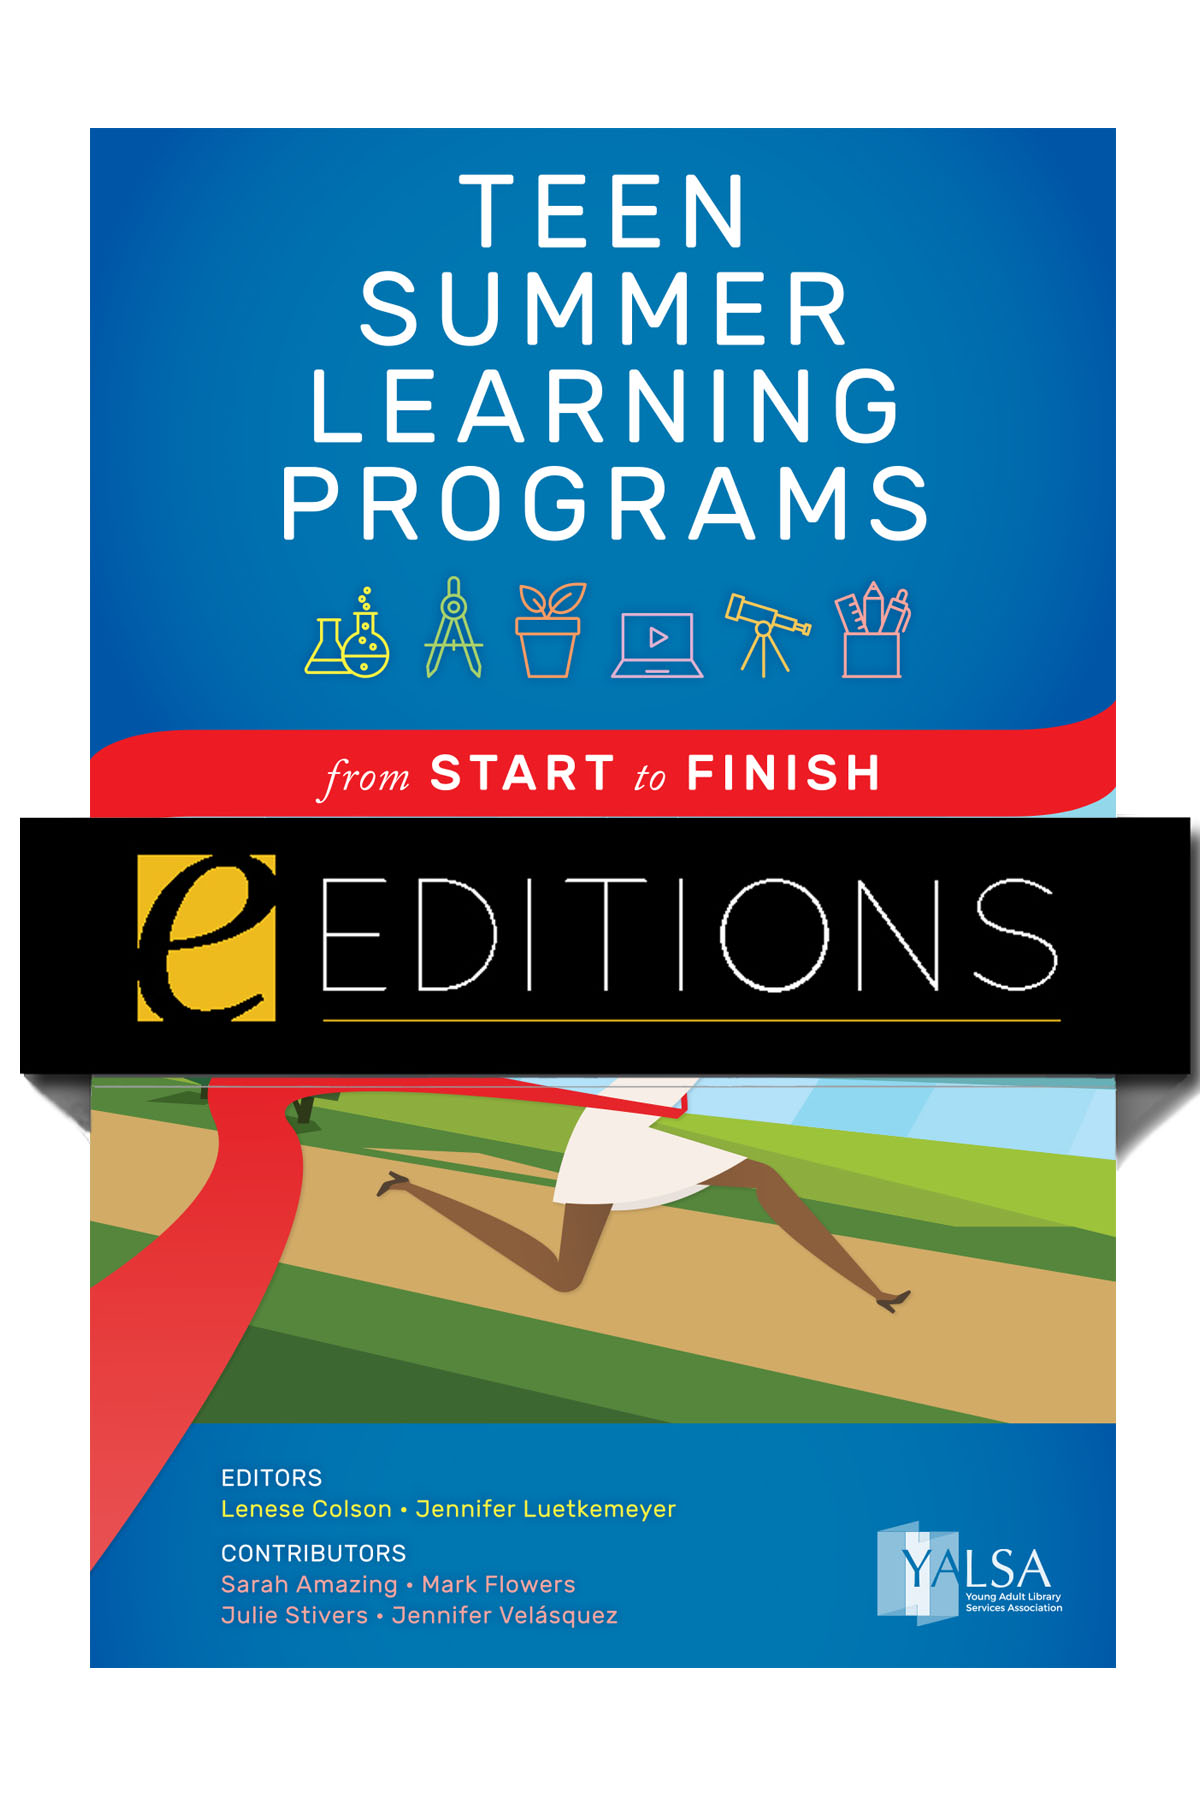 Teen Summer Learning Programs: From Start to Finish—eEditions e-book